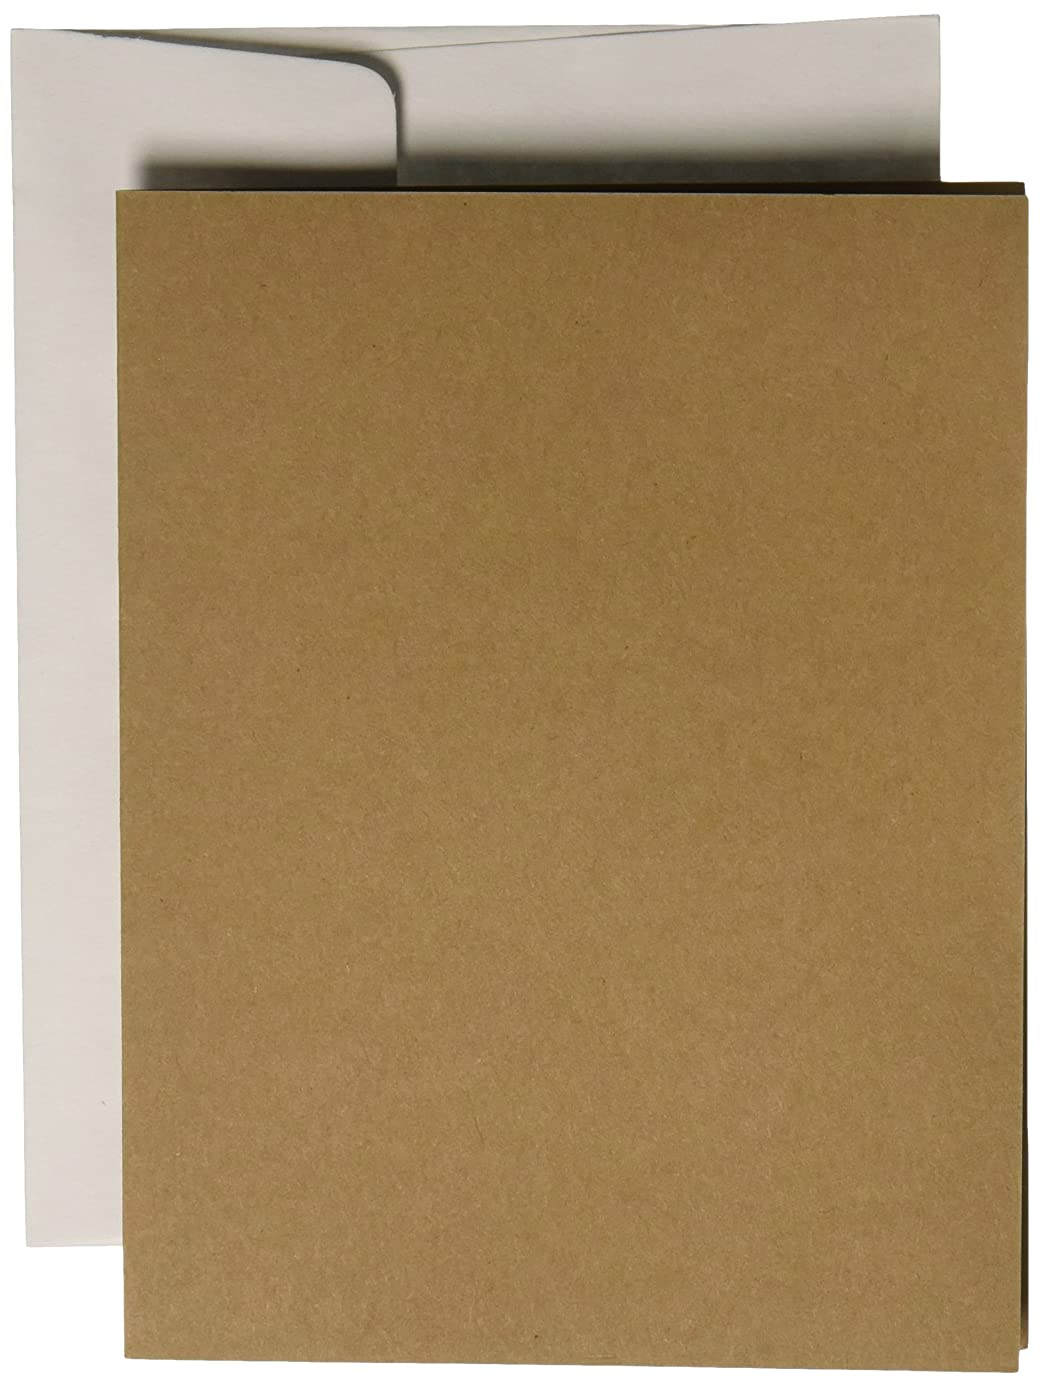 Darice Coordination's A2 Size Cards and Envelopes (Set of 50), Assorted Neutral